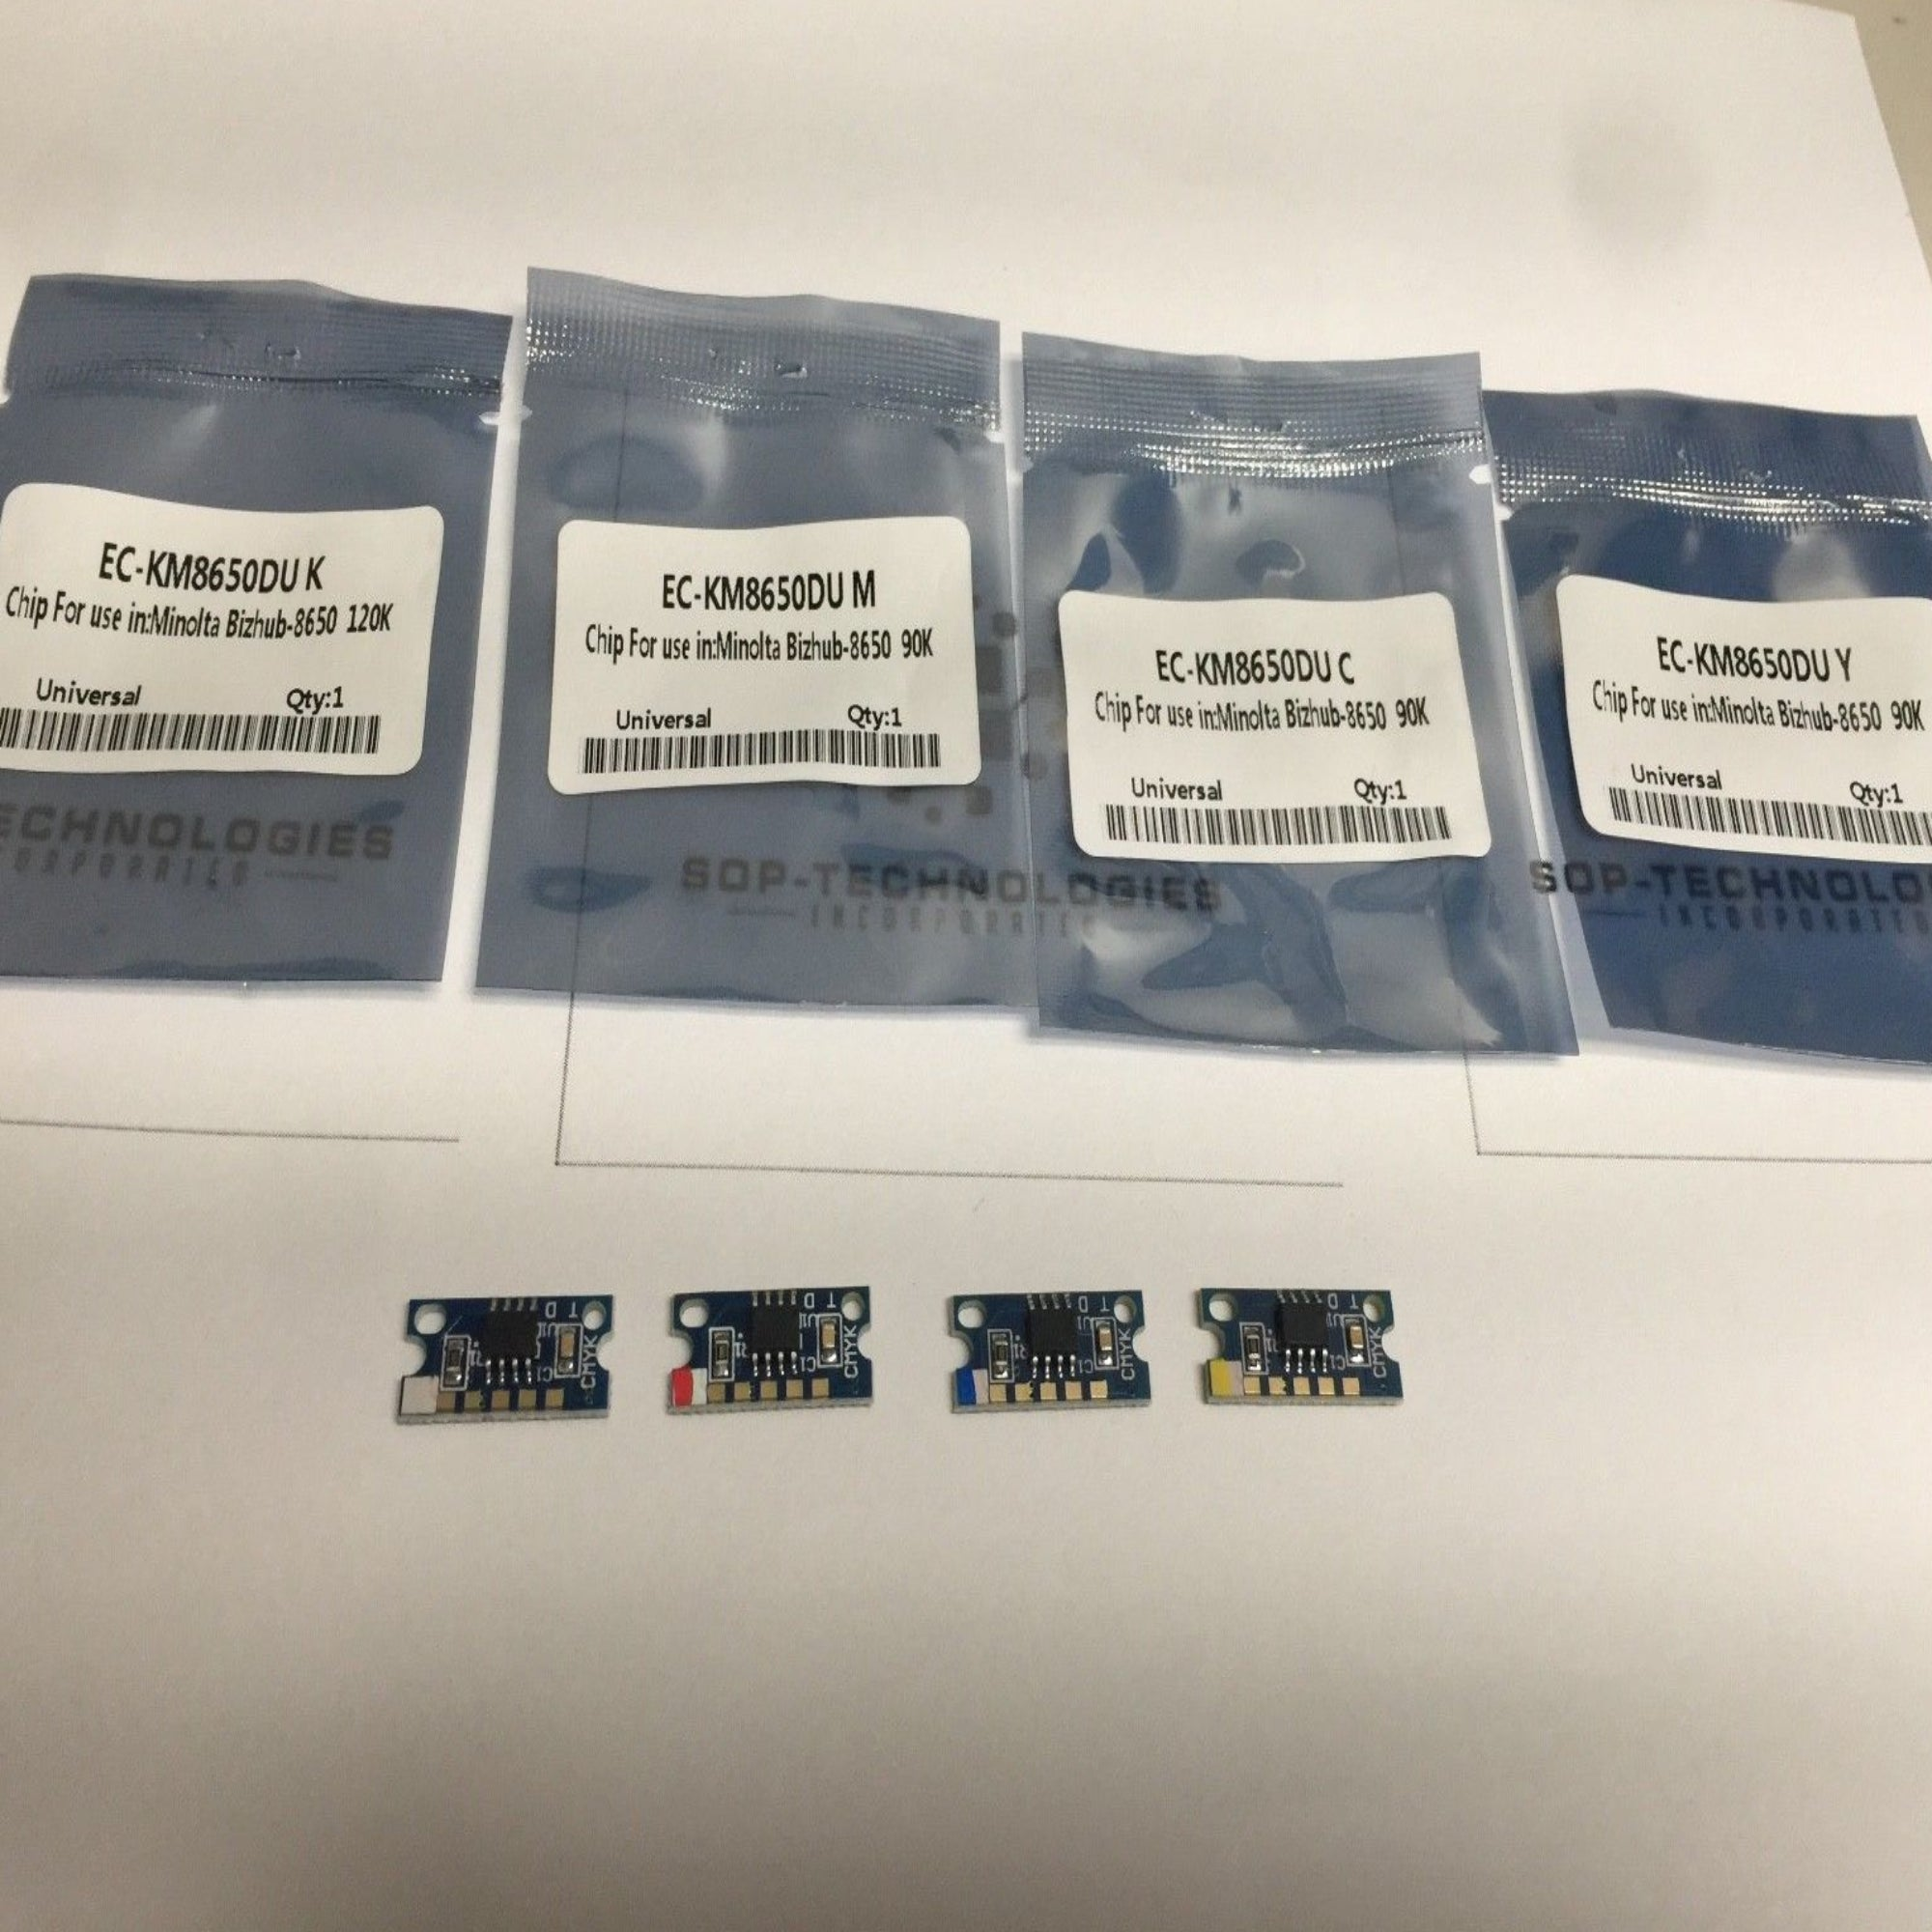 4 x Imaging Drum Chip for Konica Minolta Magicolor 8650, 8650dn, 8650hdn - SOP-TECHNOLOGIES, INC.